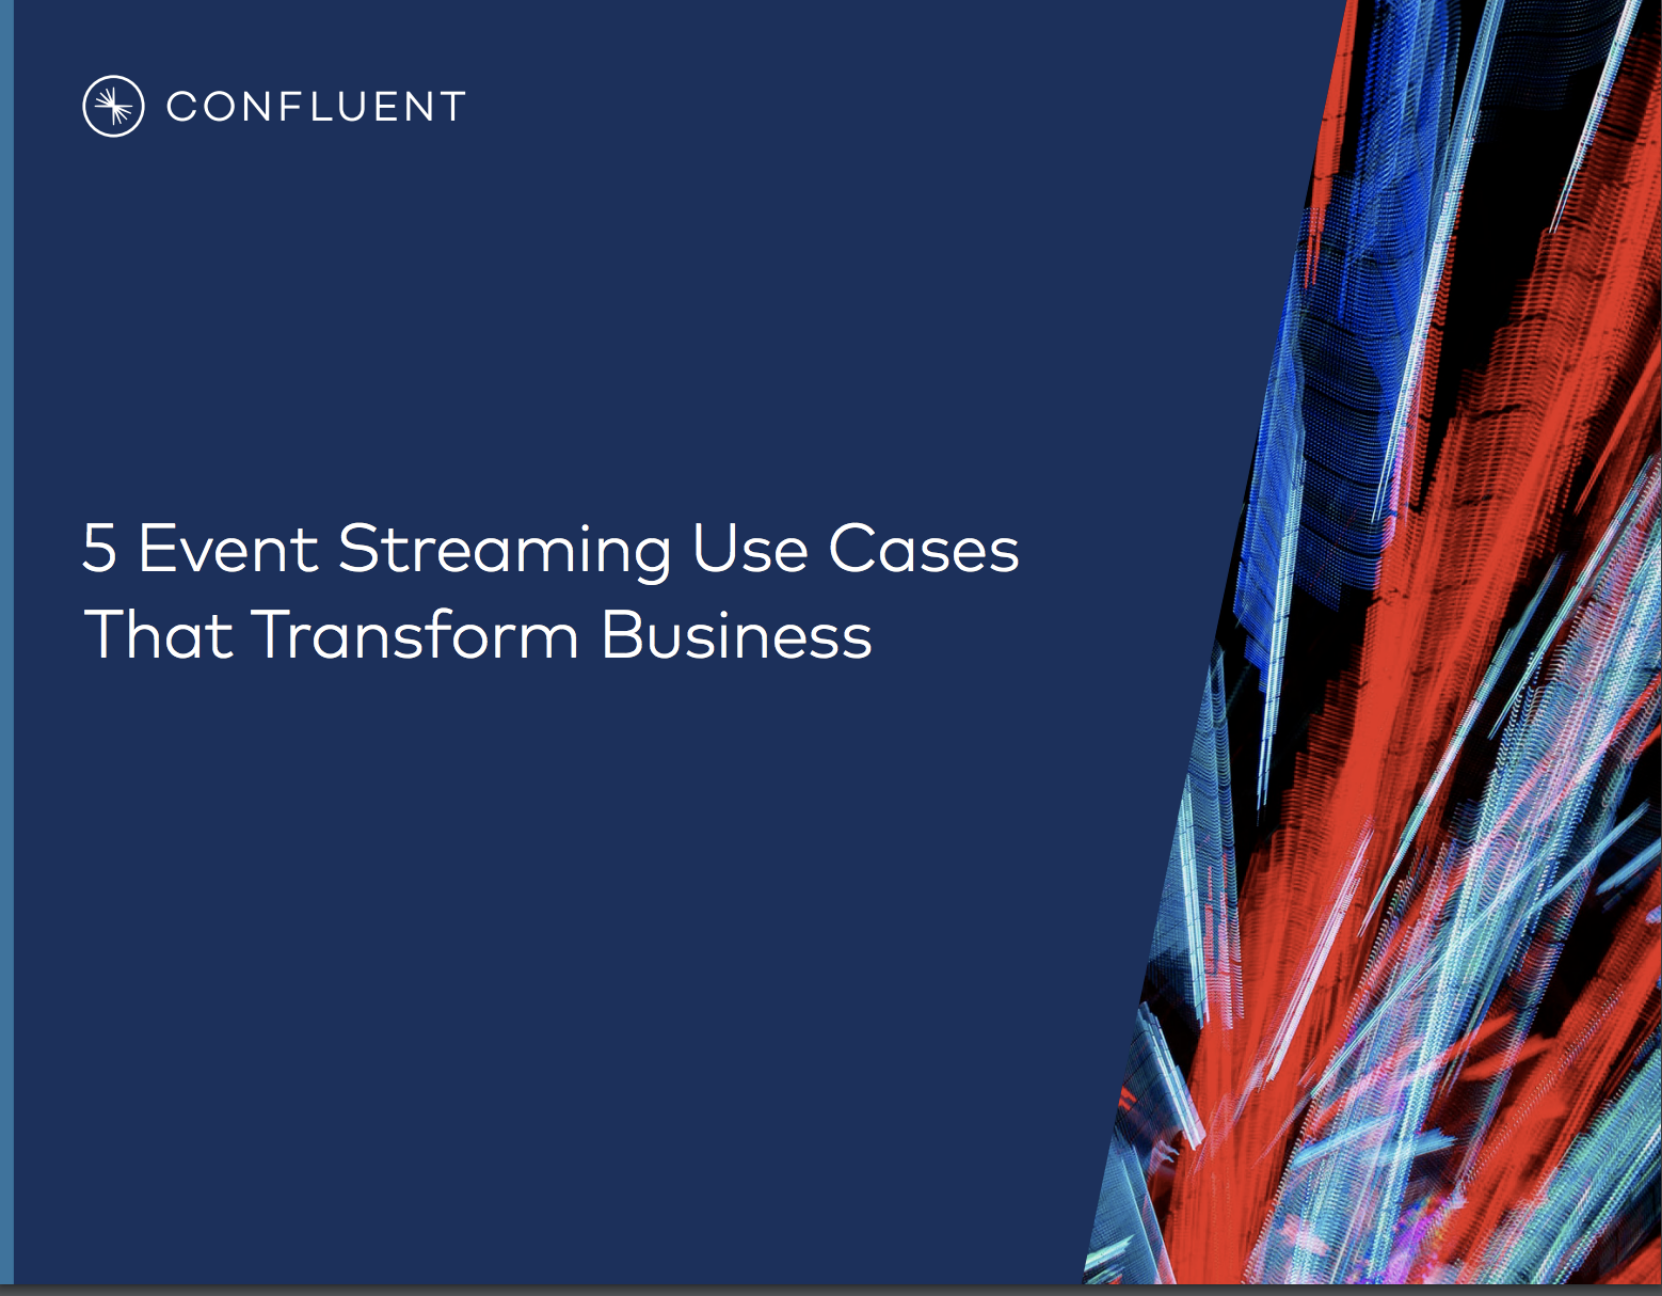 Screenshot 2020 10 22 20200929 EB 5 Event Streaming Use Cases That Transform Business pdf png PNG Image 1558 × 1214 pixel... - 5 Event Streaming Use Cases That Transform Business